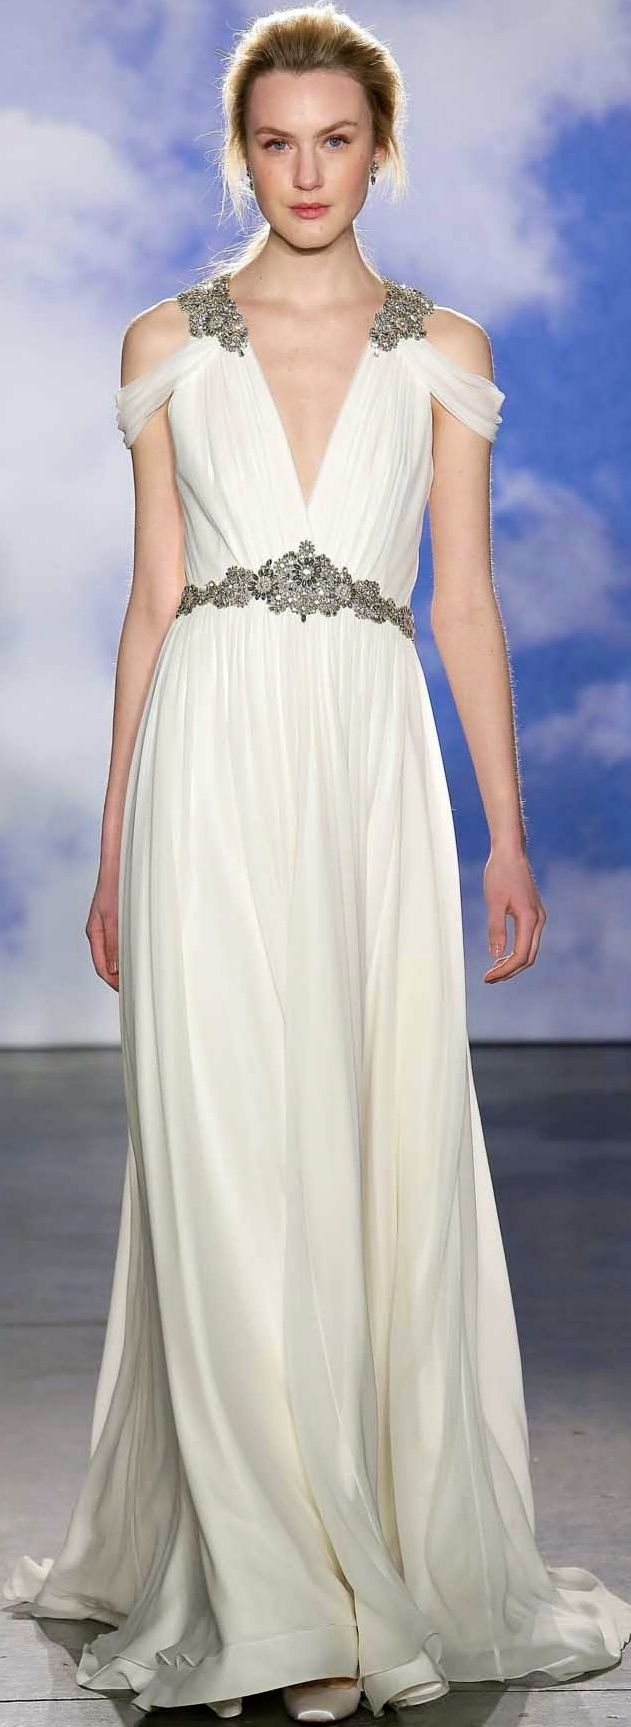 Jenny Packman                                                                                                                                                      More